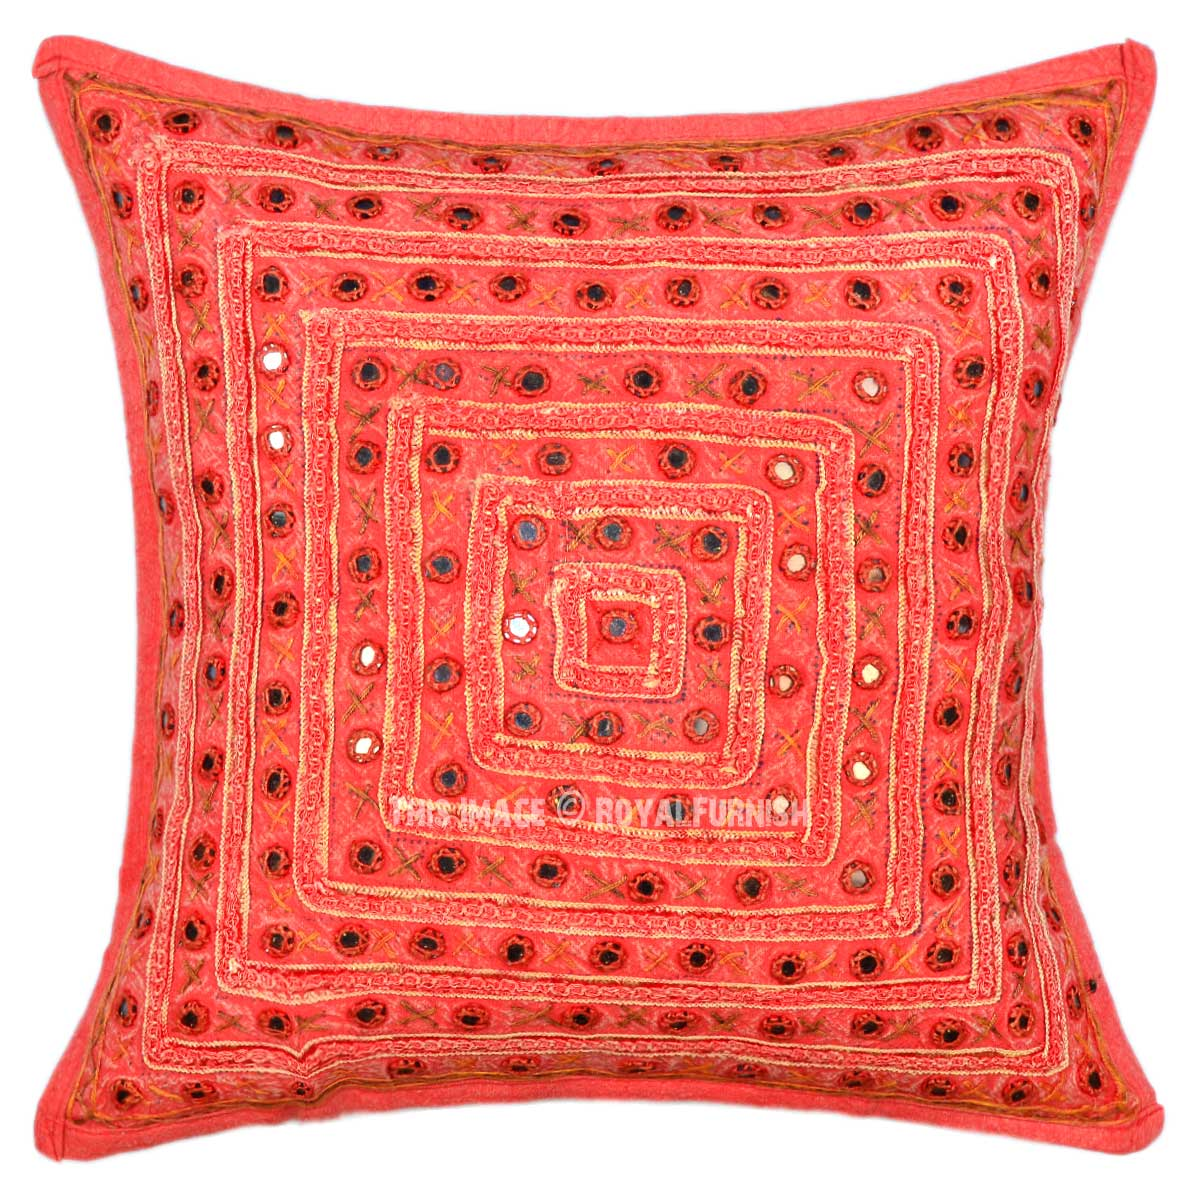 Throw Me A Pillow Coupon Code : Orange 16X16 Old Mirror Embroidery One-Of-A-Kind Cotton Throw Pillow Cover - RoyalFurnish.com